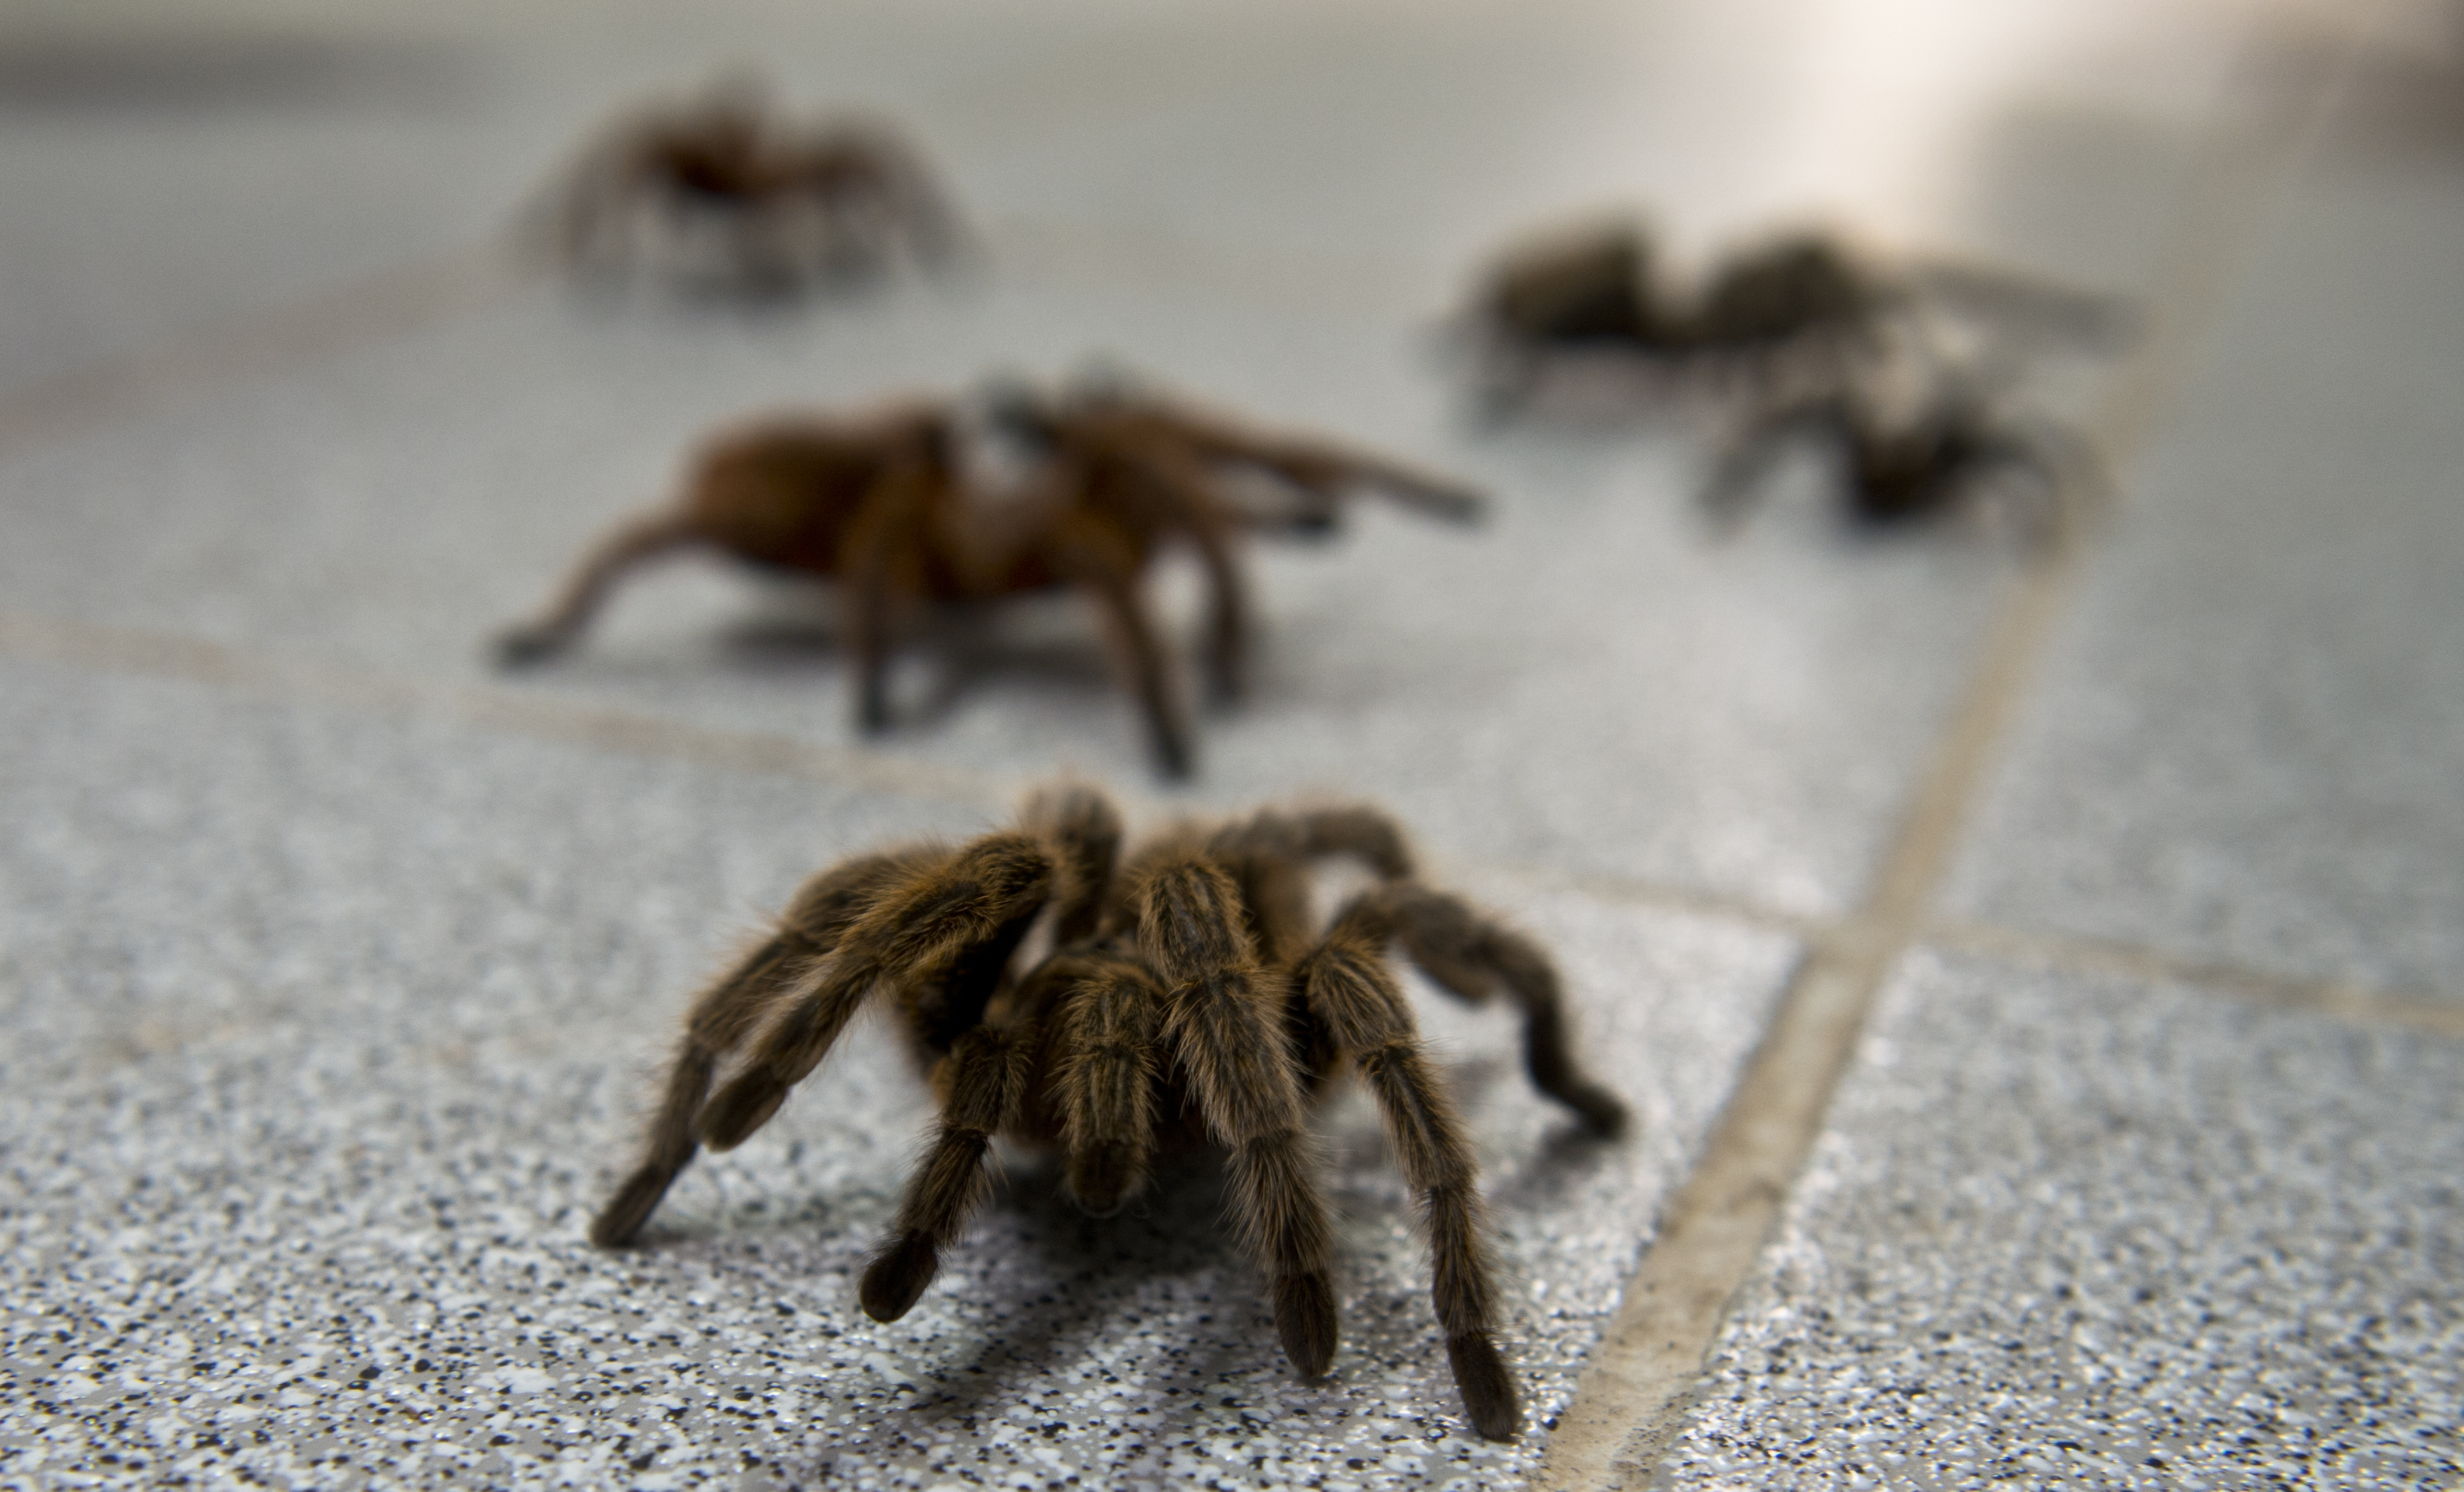 10 things you'll only know if you're afraid of spiders